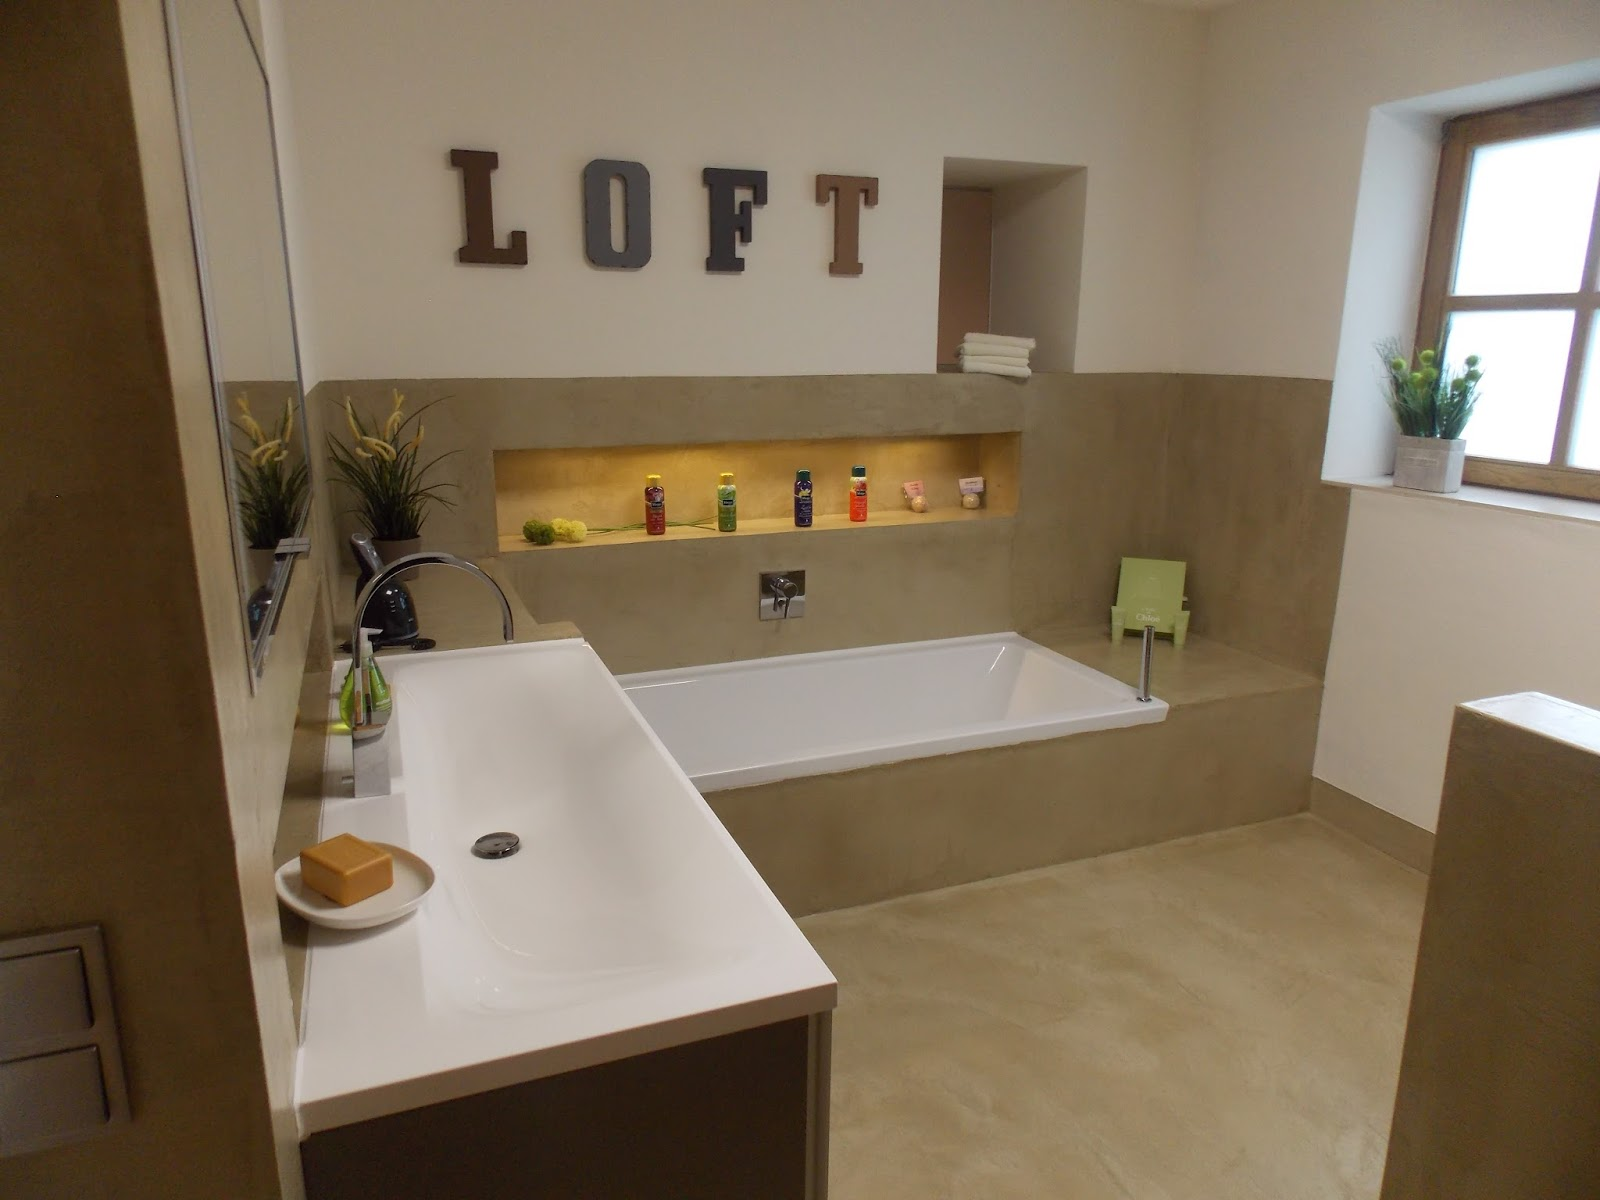 Lifeboxx Gmbh Beton Cire Microtopping Hat Kein Problem Mit Hoher